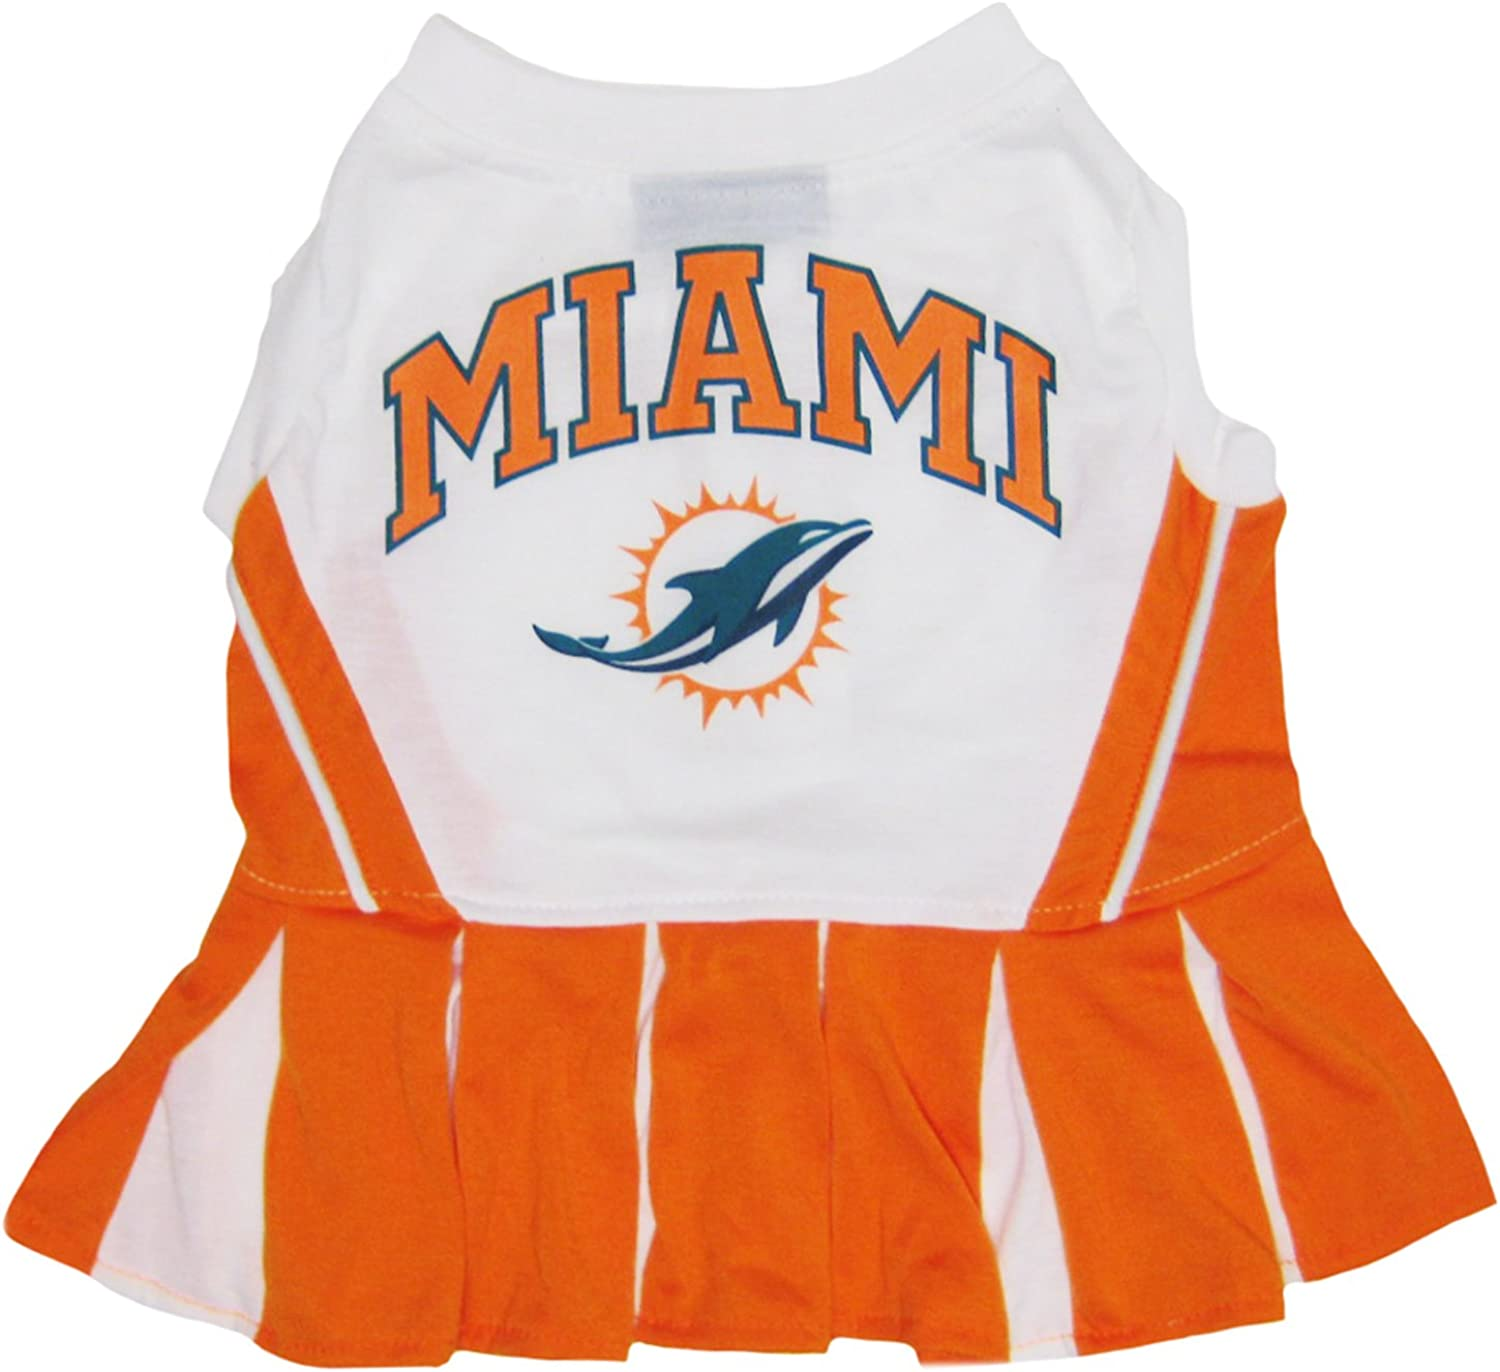 Miami Dolphins NFL Cheerleader Dress for Dogs  Size Medium